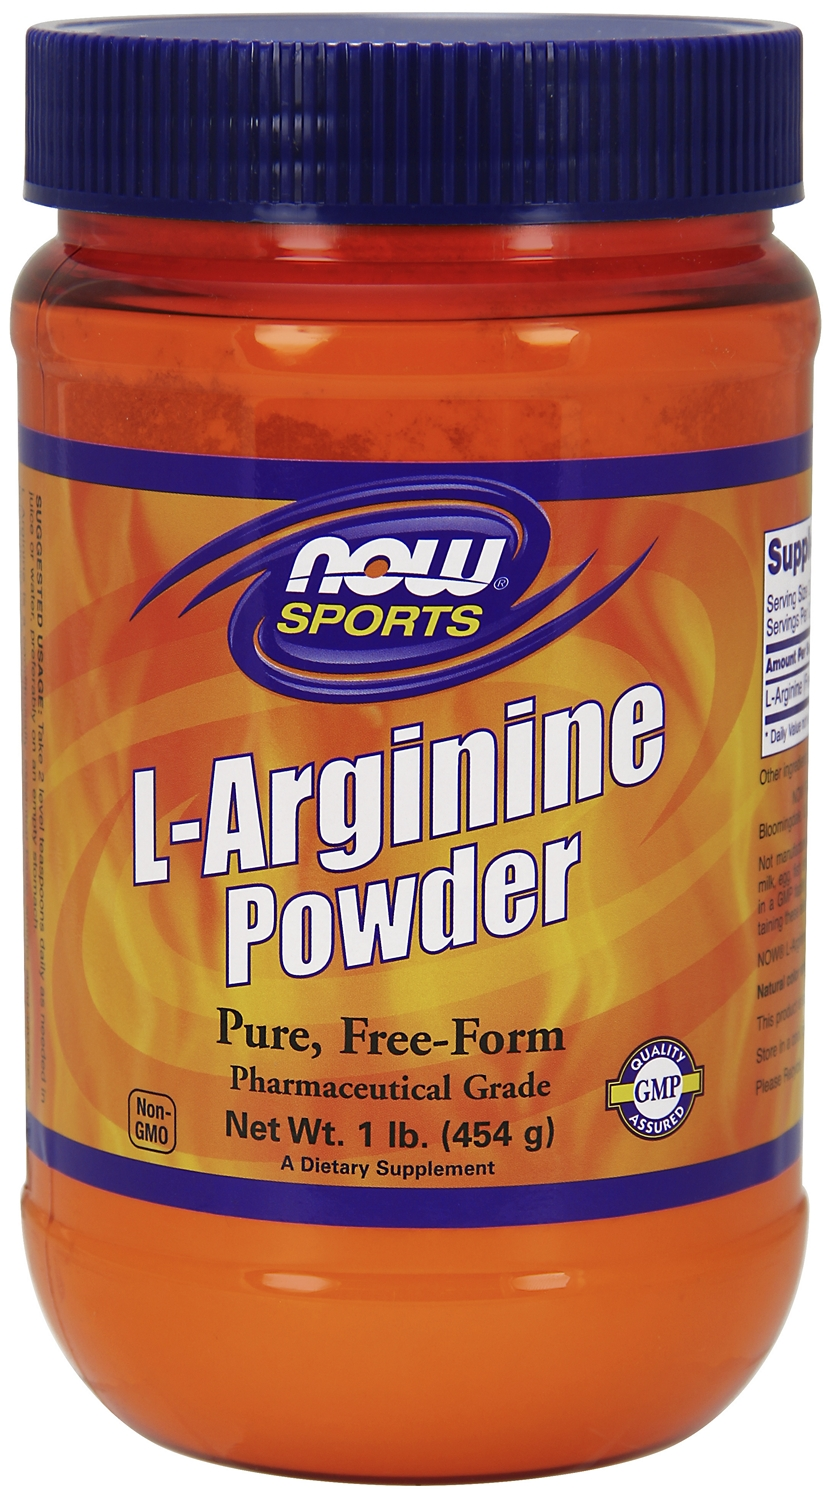 L-Arginine Powder 1 lb (454 g) by NOW